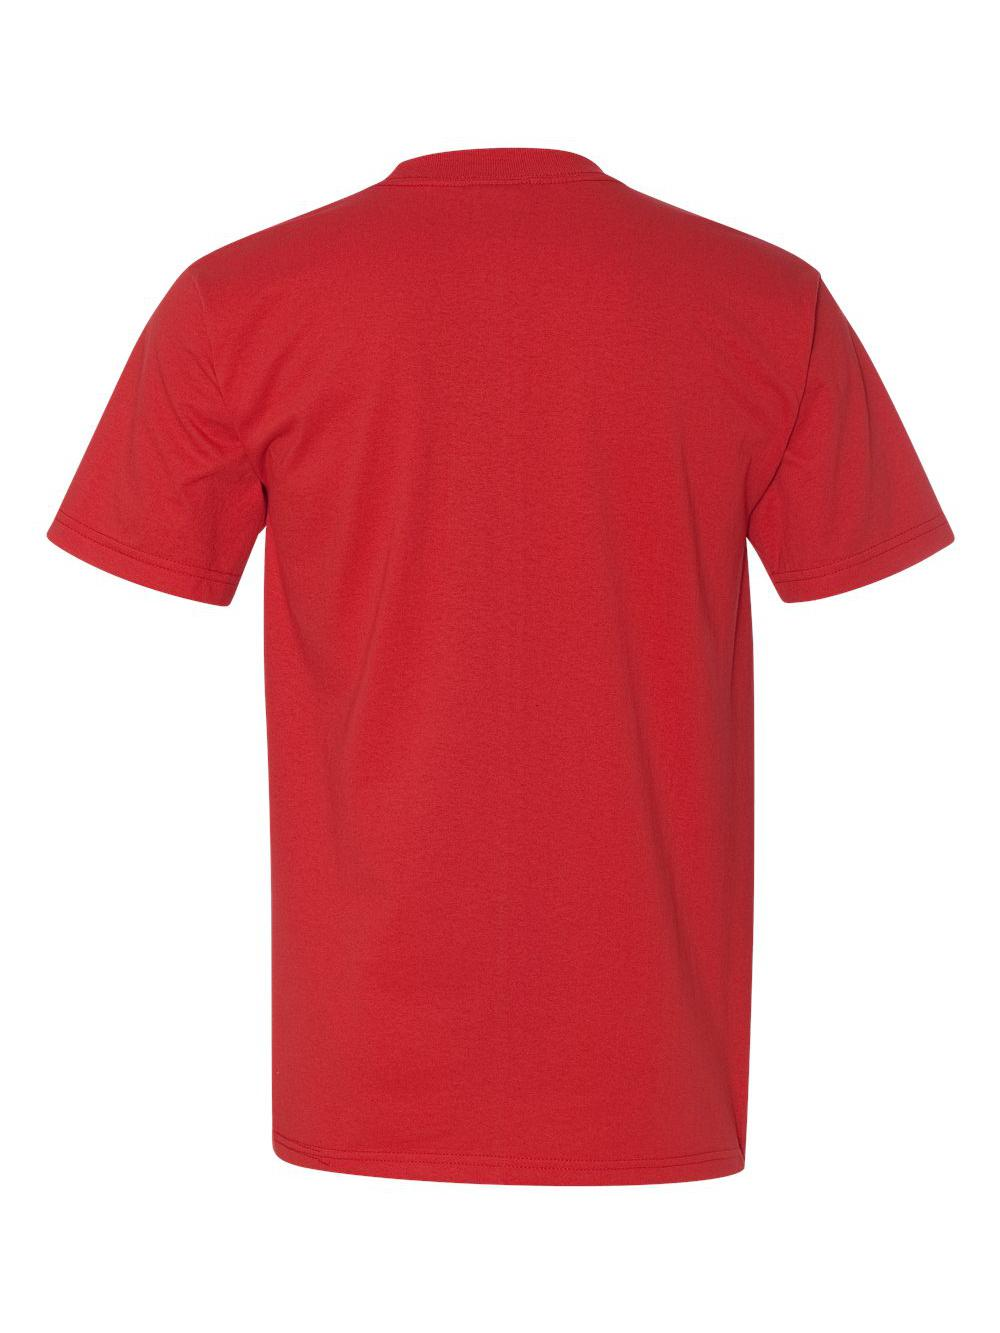 Bayside-Union-Made-Short-Sleeve-T-Shirt-with-a-Pocket-3015 thumbnail 25